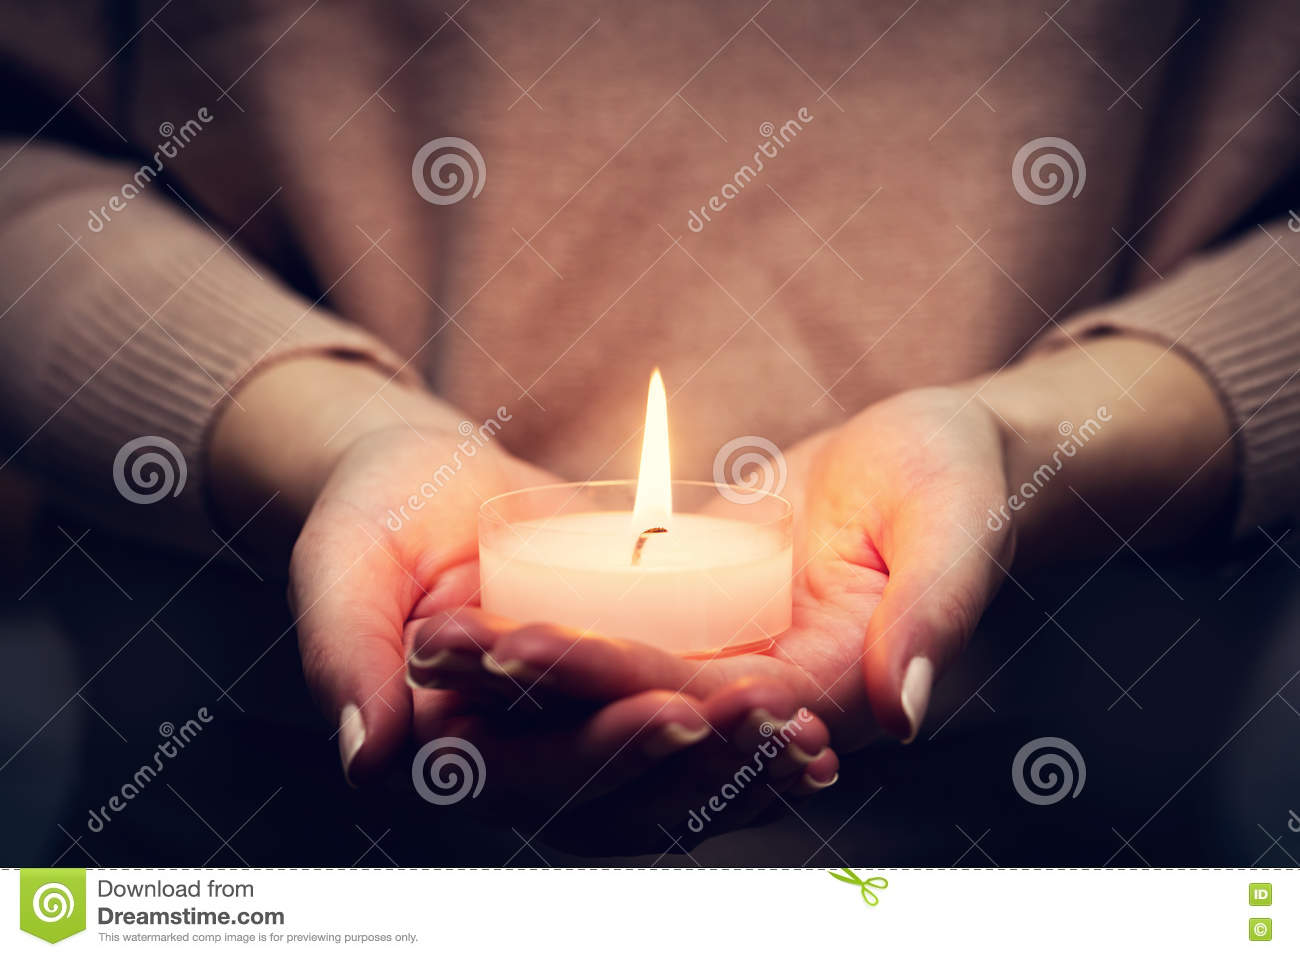 Candle light glowing in woman s hands. Praying, faith, religion